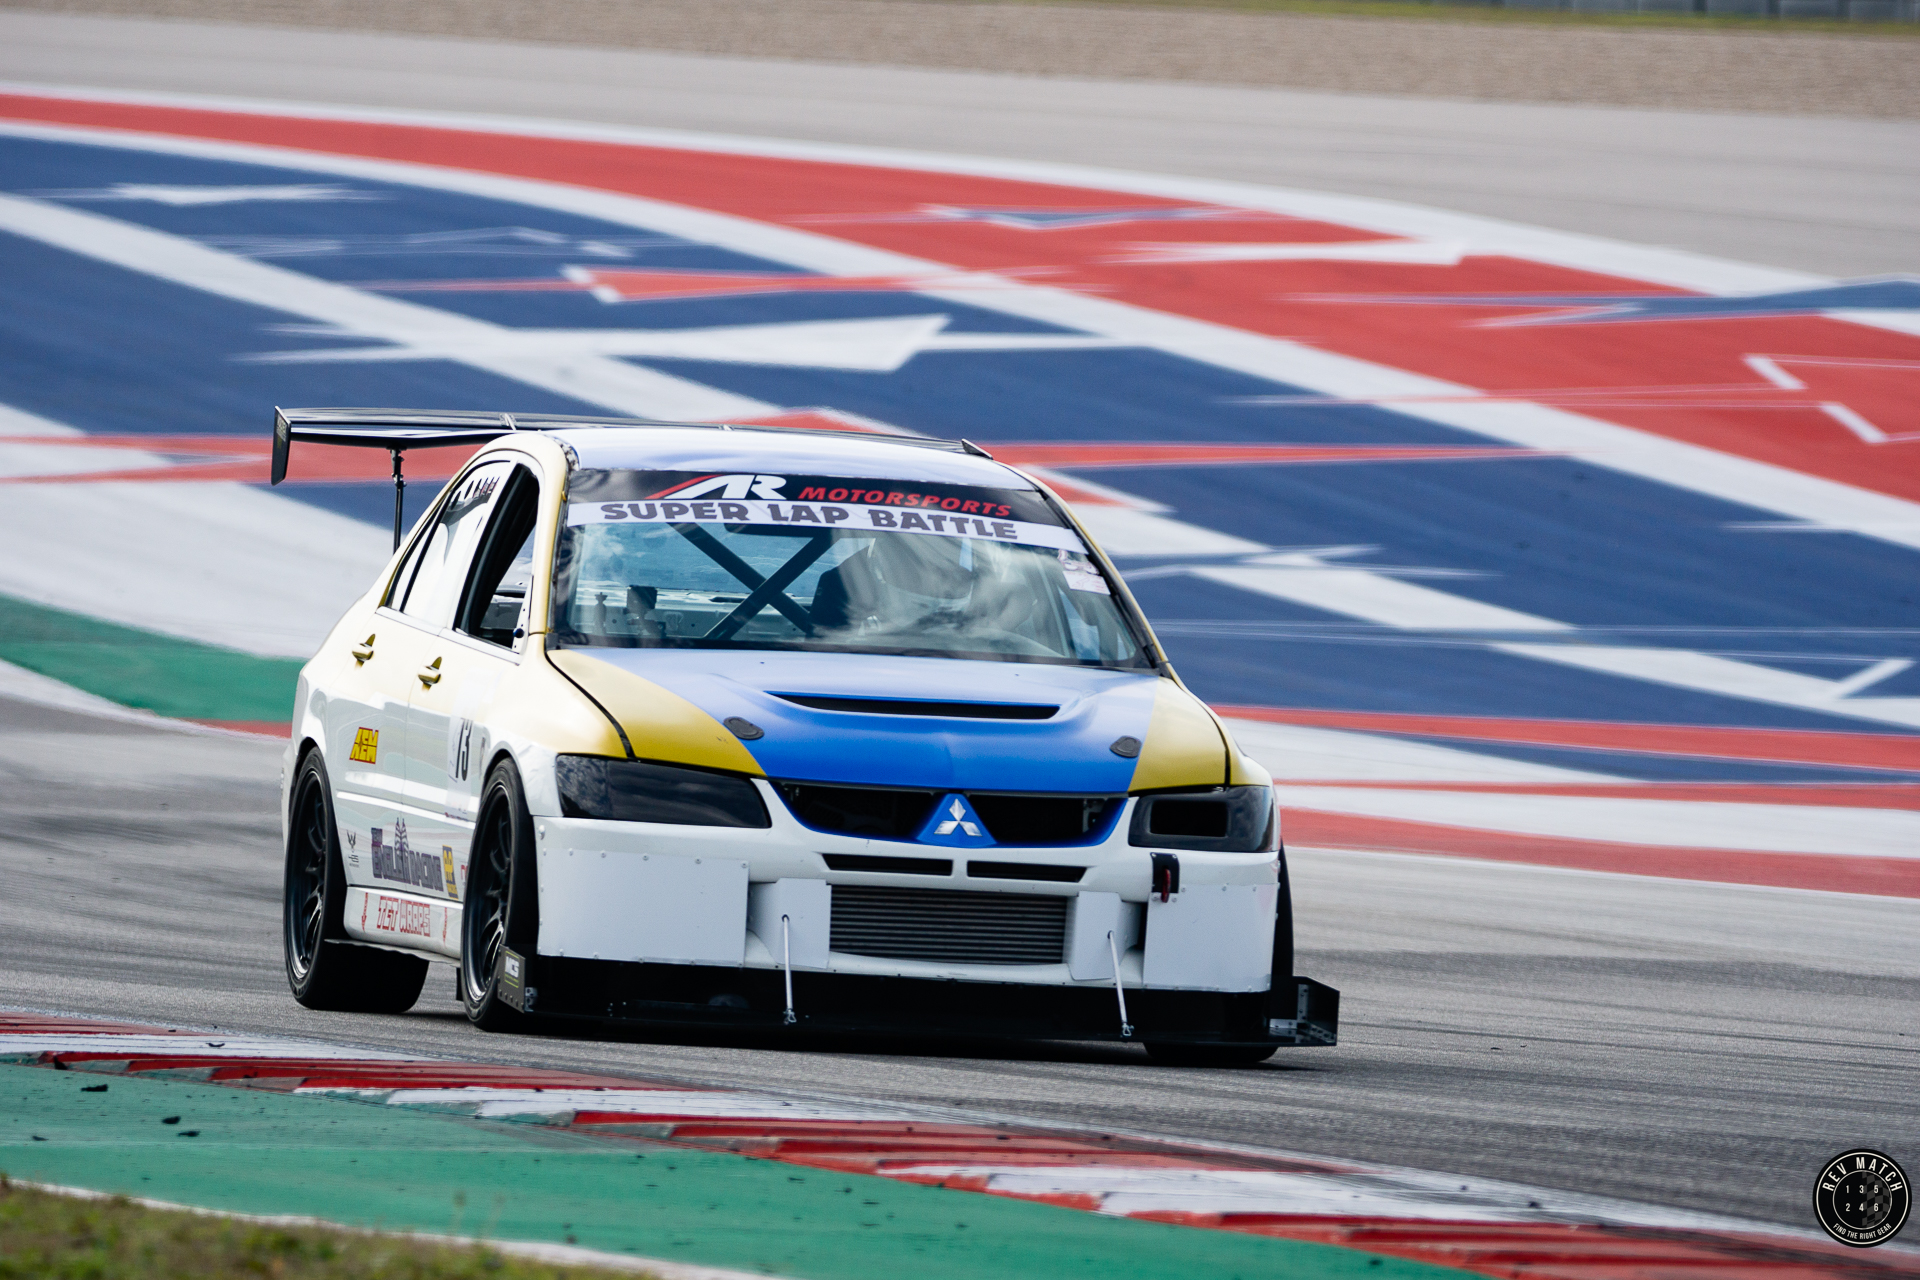 Super Lap Battle COTA Rev Match Media-330.jpg